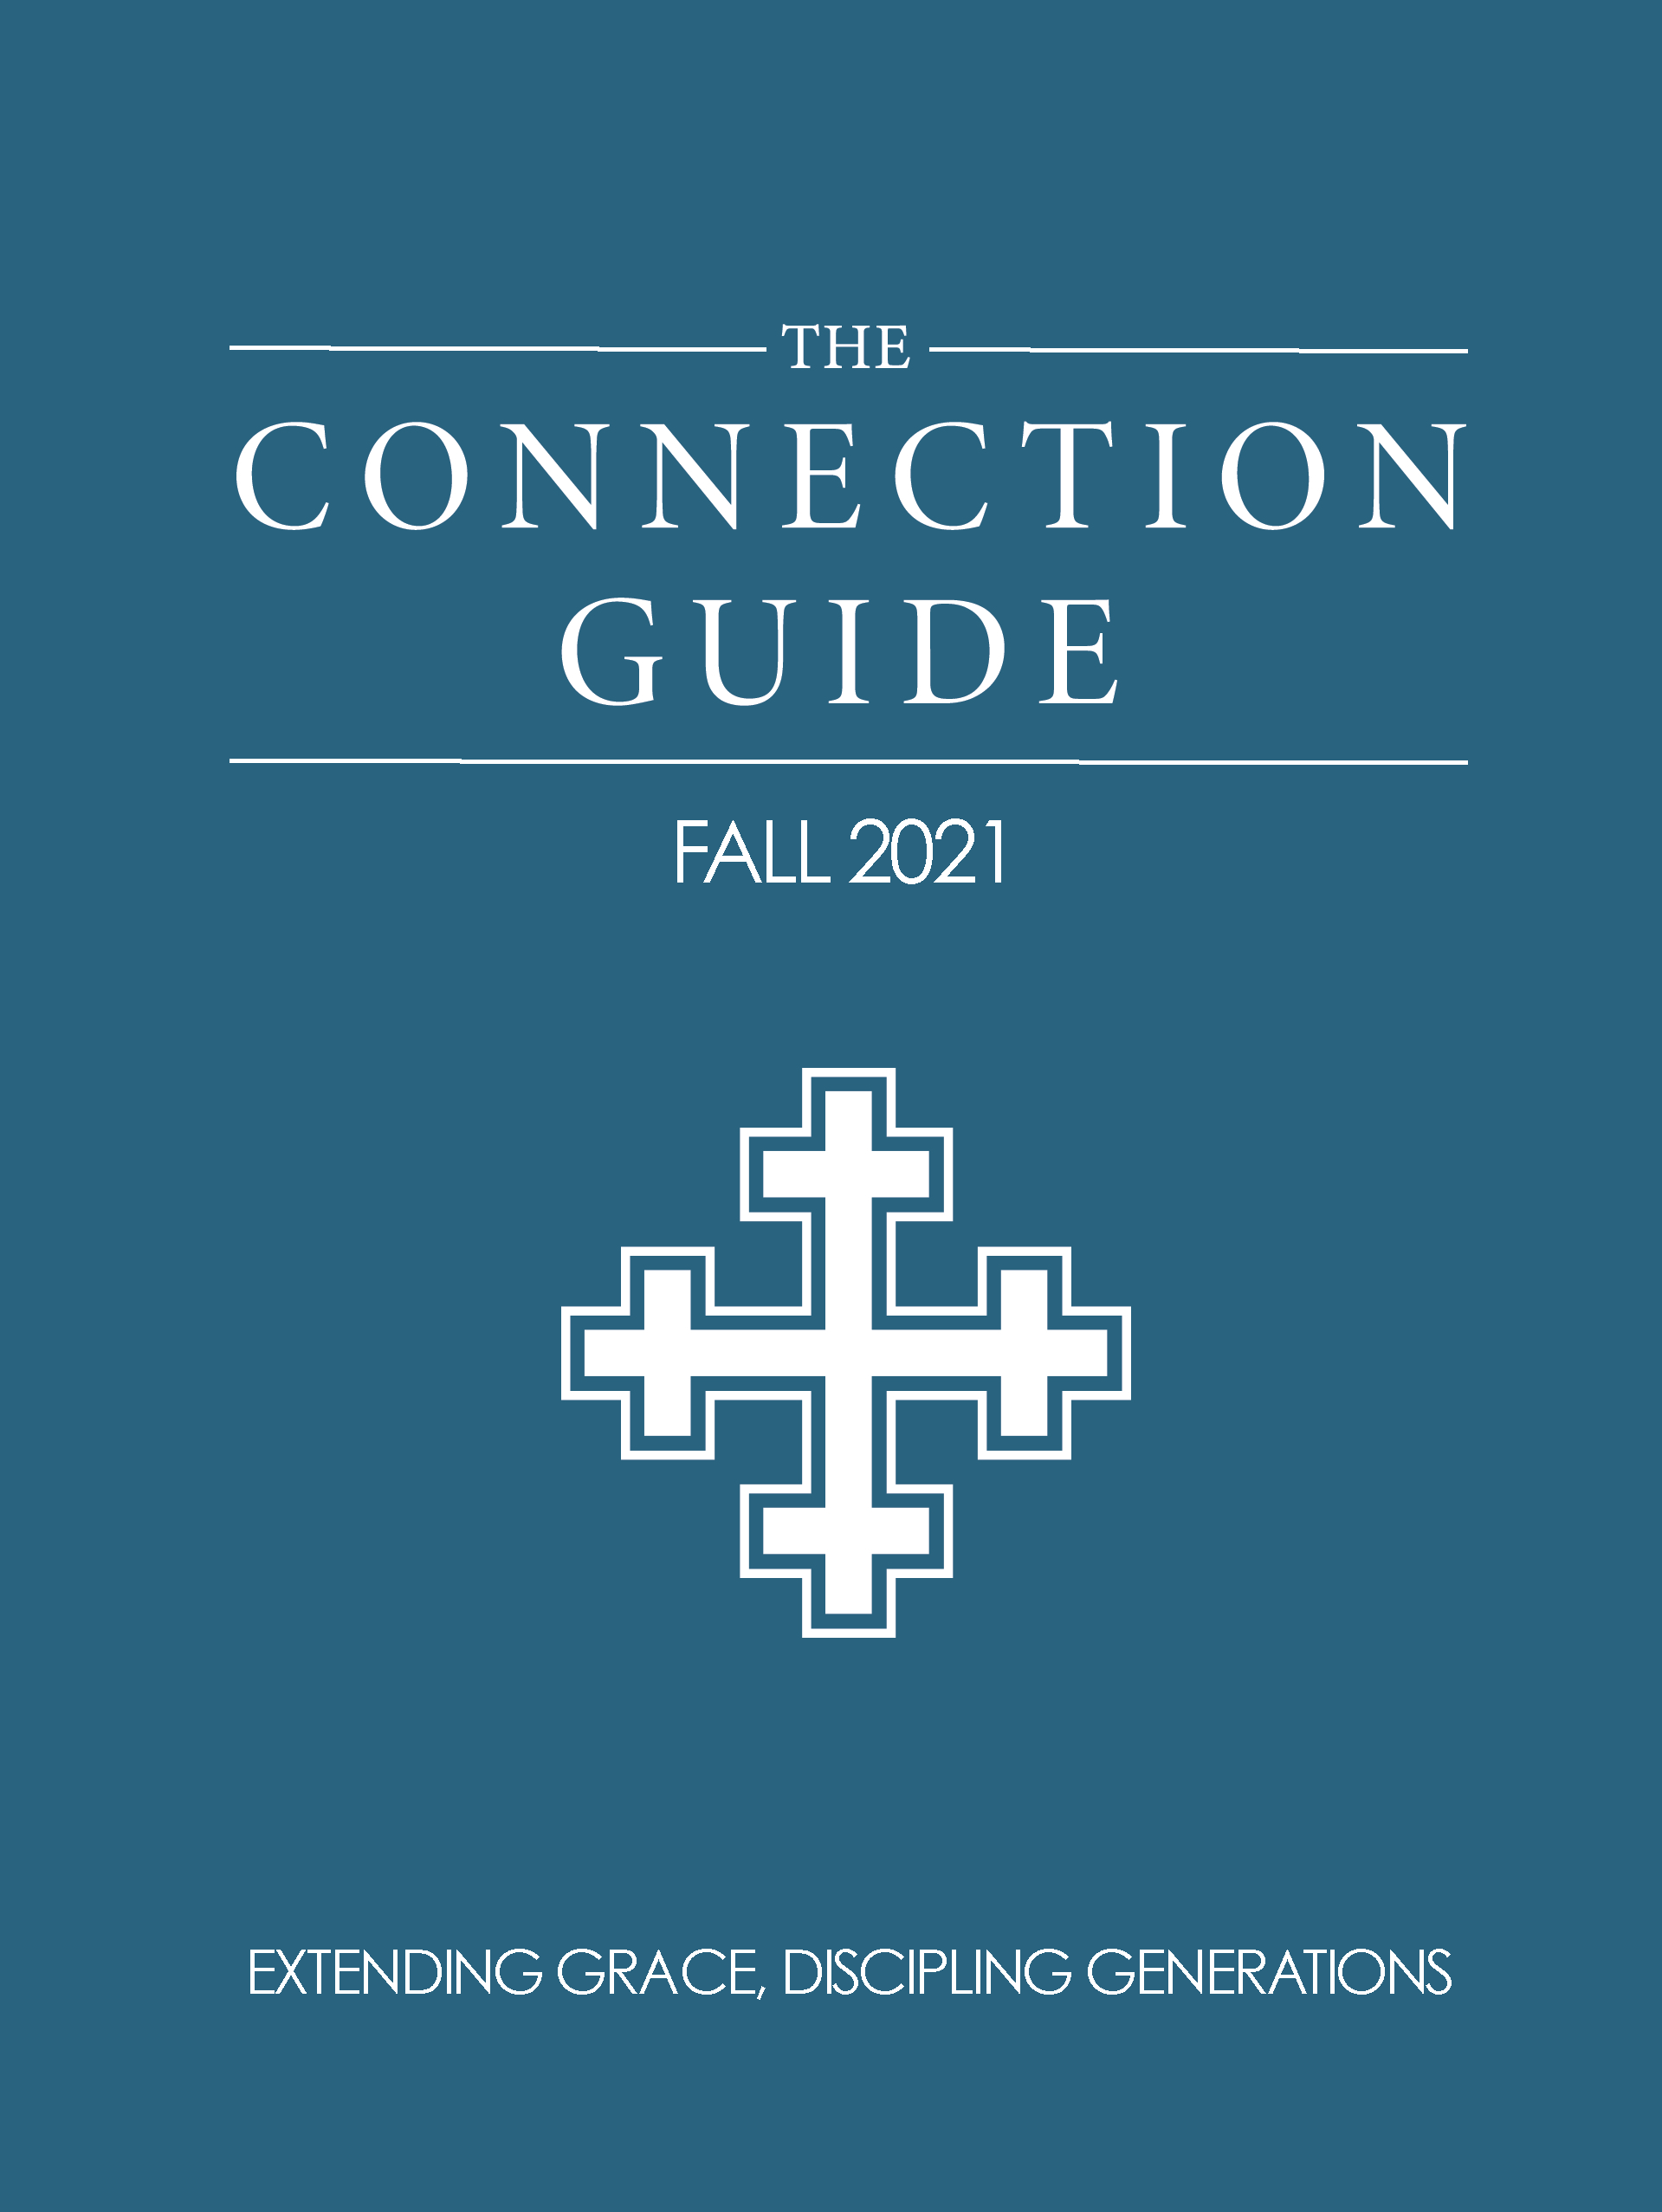 Connection Guide Cover Fall 2021